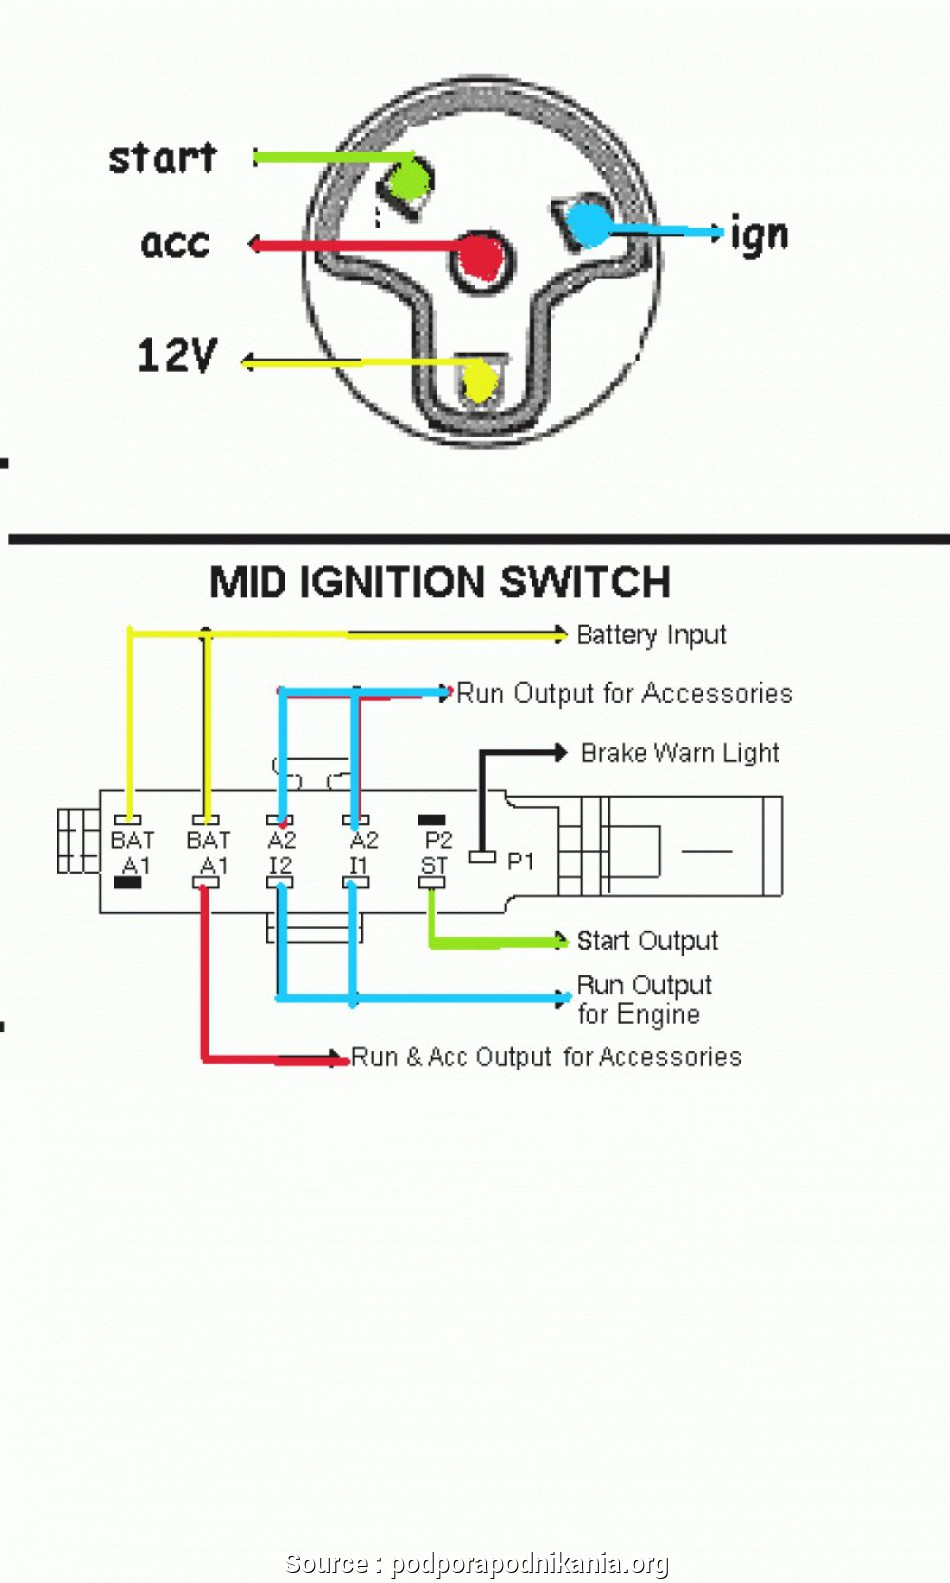 oy_2064] ignition switch wiring diagram from 6 wire to 4 wire download  diagram  phot oliti pap mohammedshrine librar wiring 101